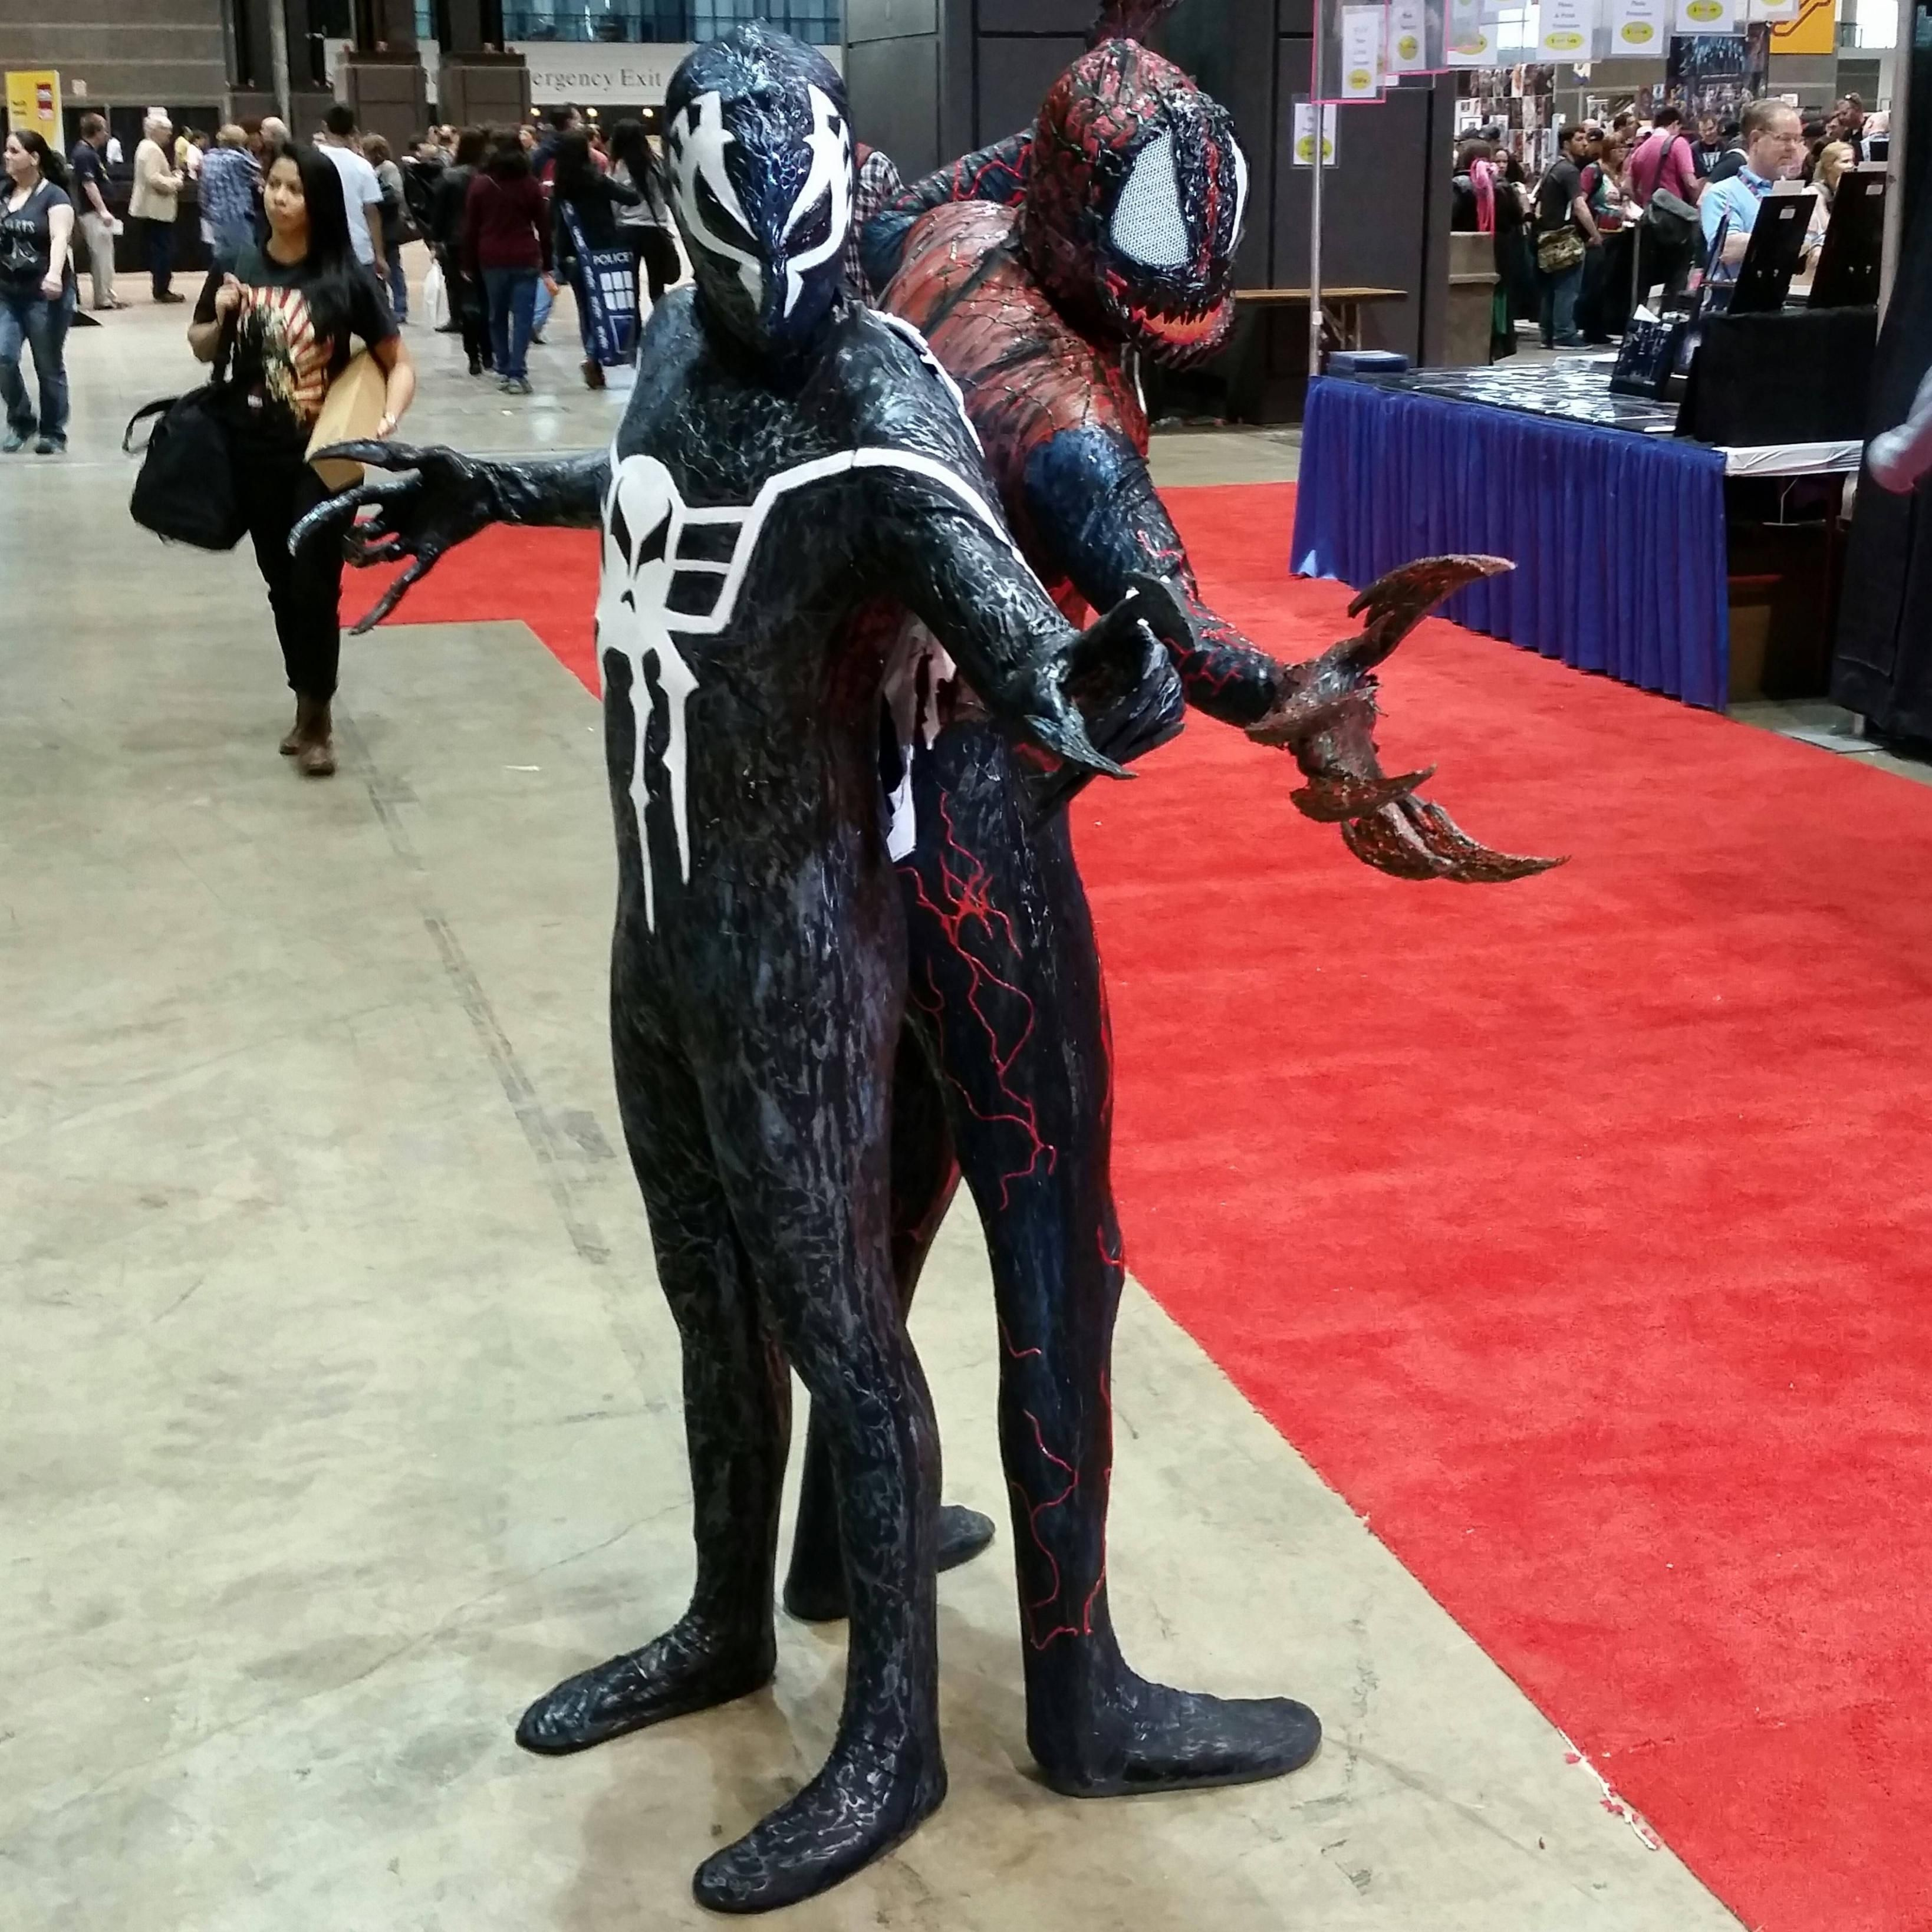 Self] Symbiote Spider-Man 2099 and Spider-Carnage cosplay at C2E2 ...